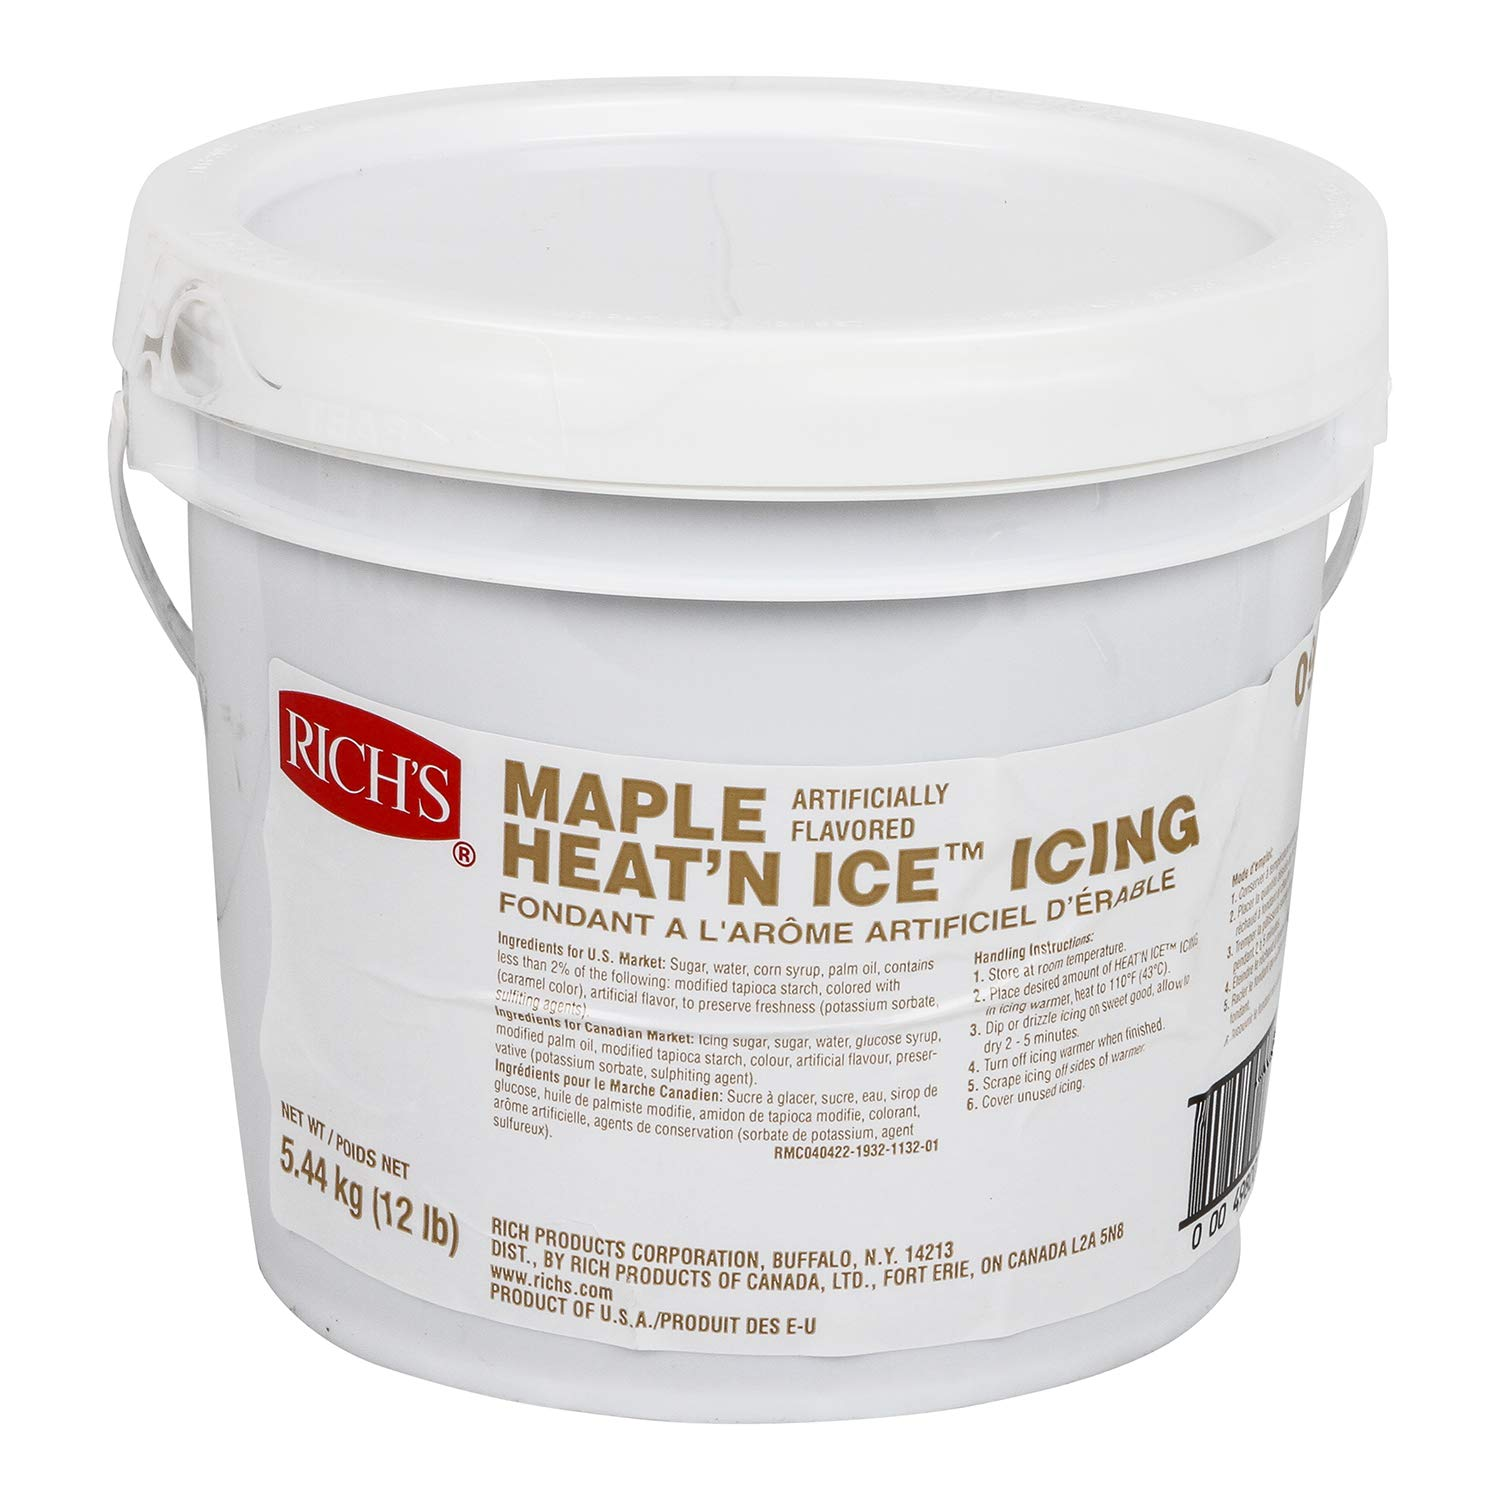 Rich's Heat 'N Ice Donut Icing for Donuts, Rolls & More, Maple, 12 lb Pail